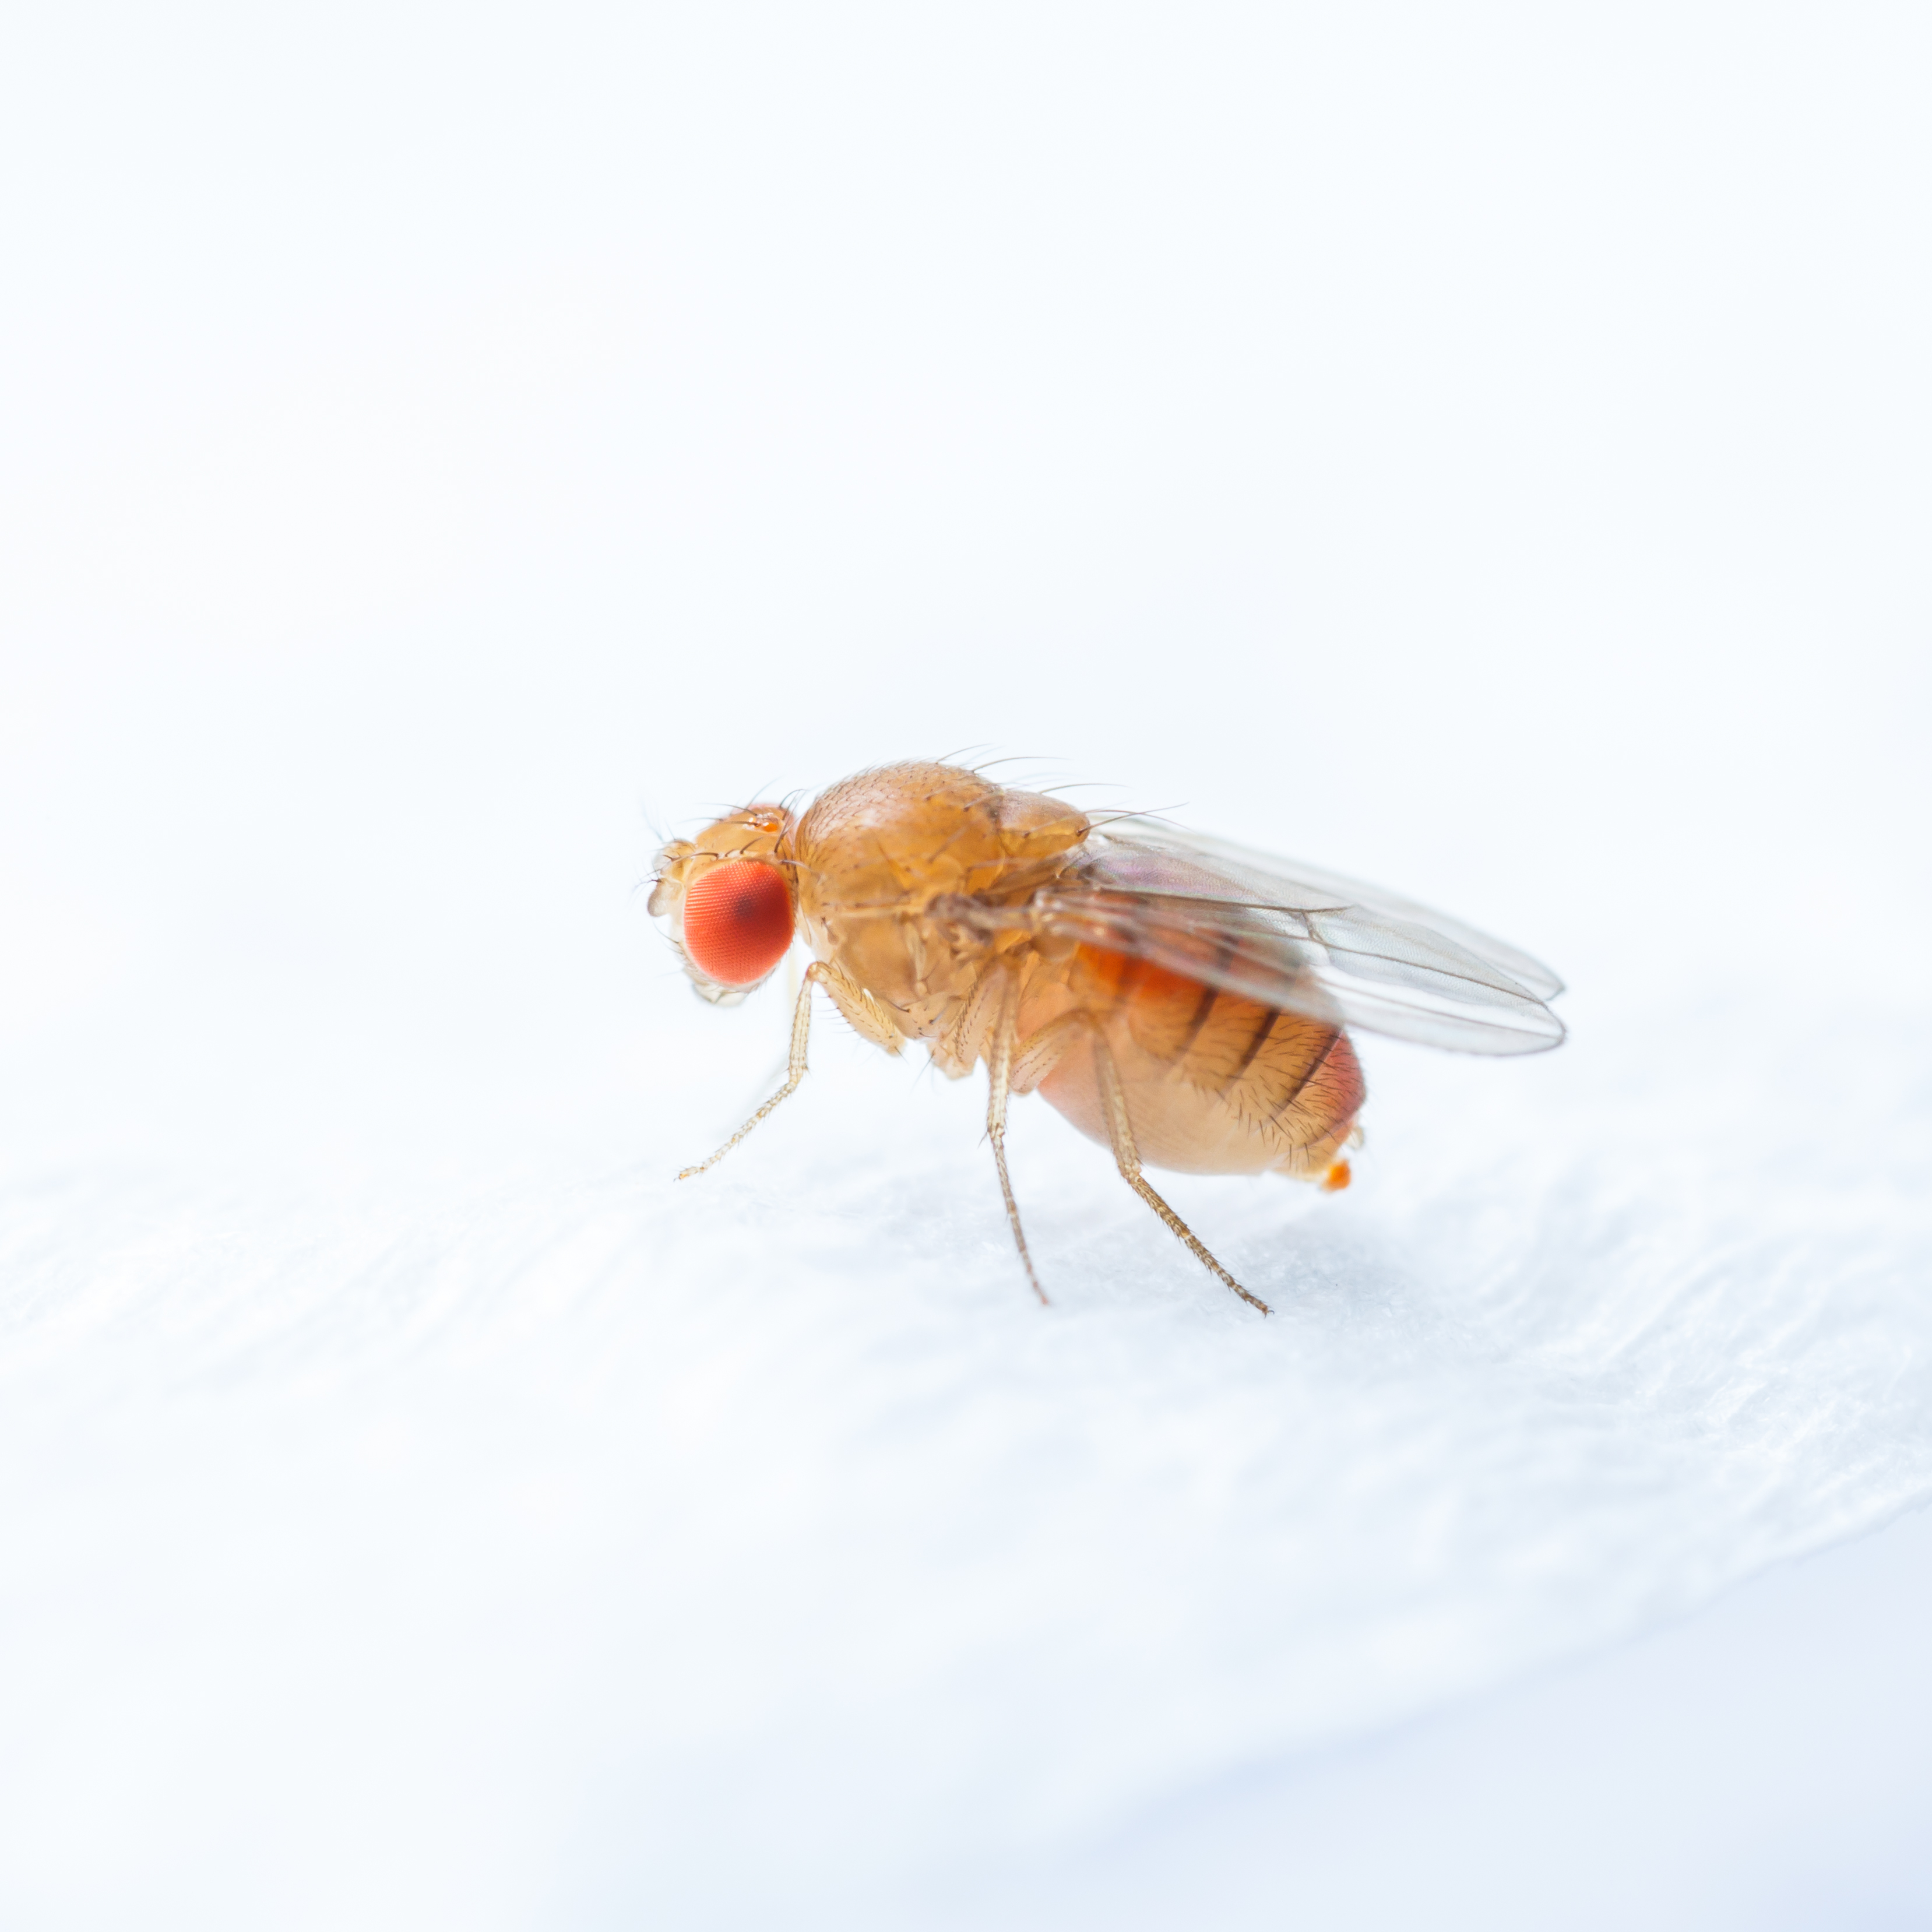 Bananflue - Drosophila melanogaster